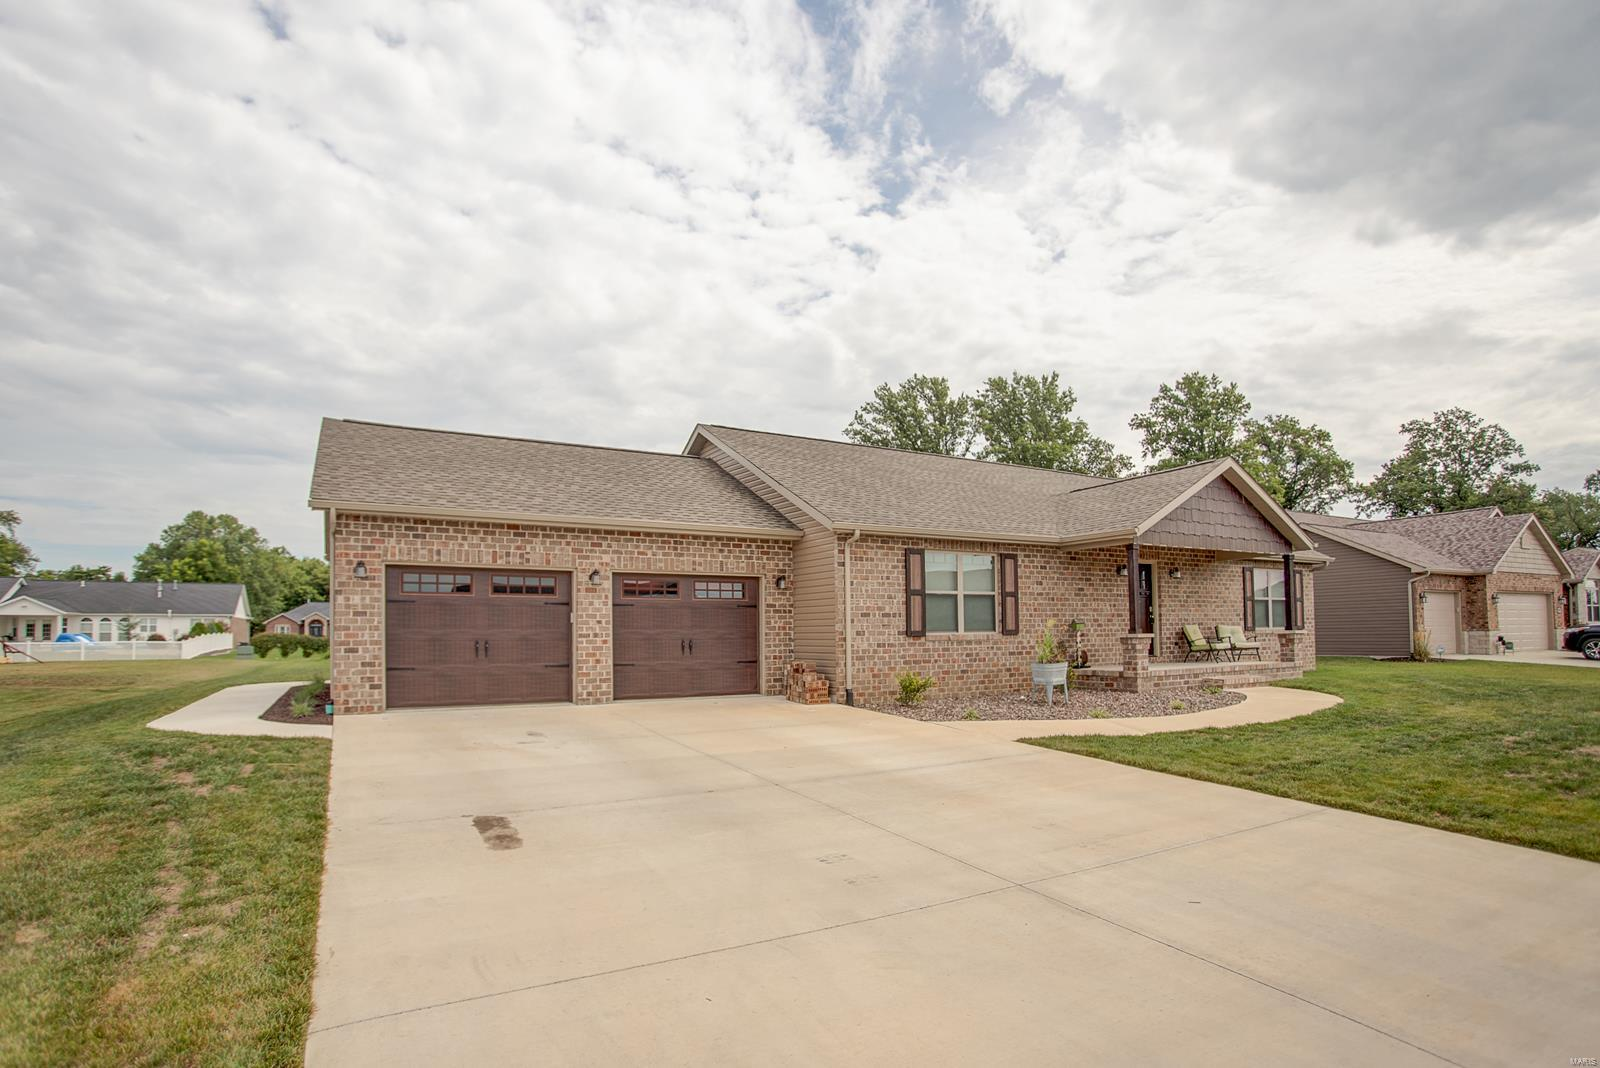 9609 Fieldcrest Property Photo - Breese, IL real estate listing